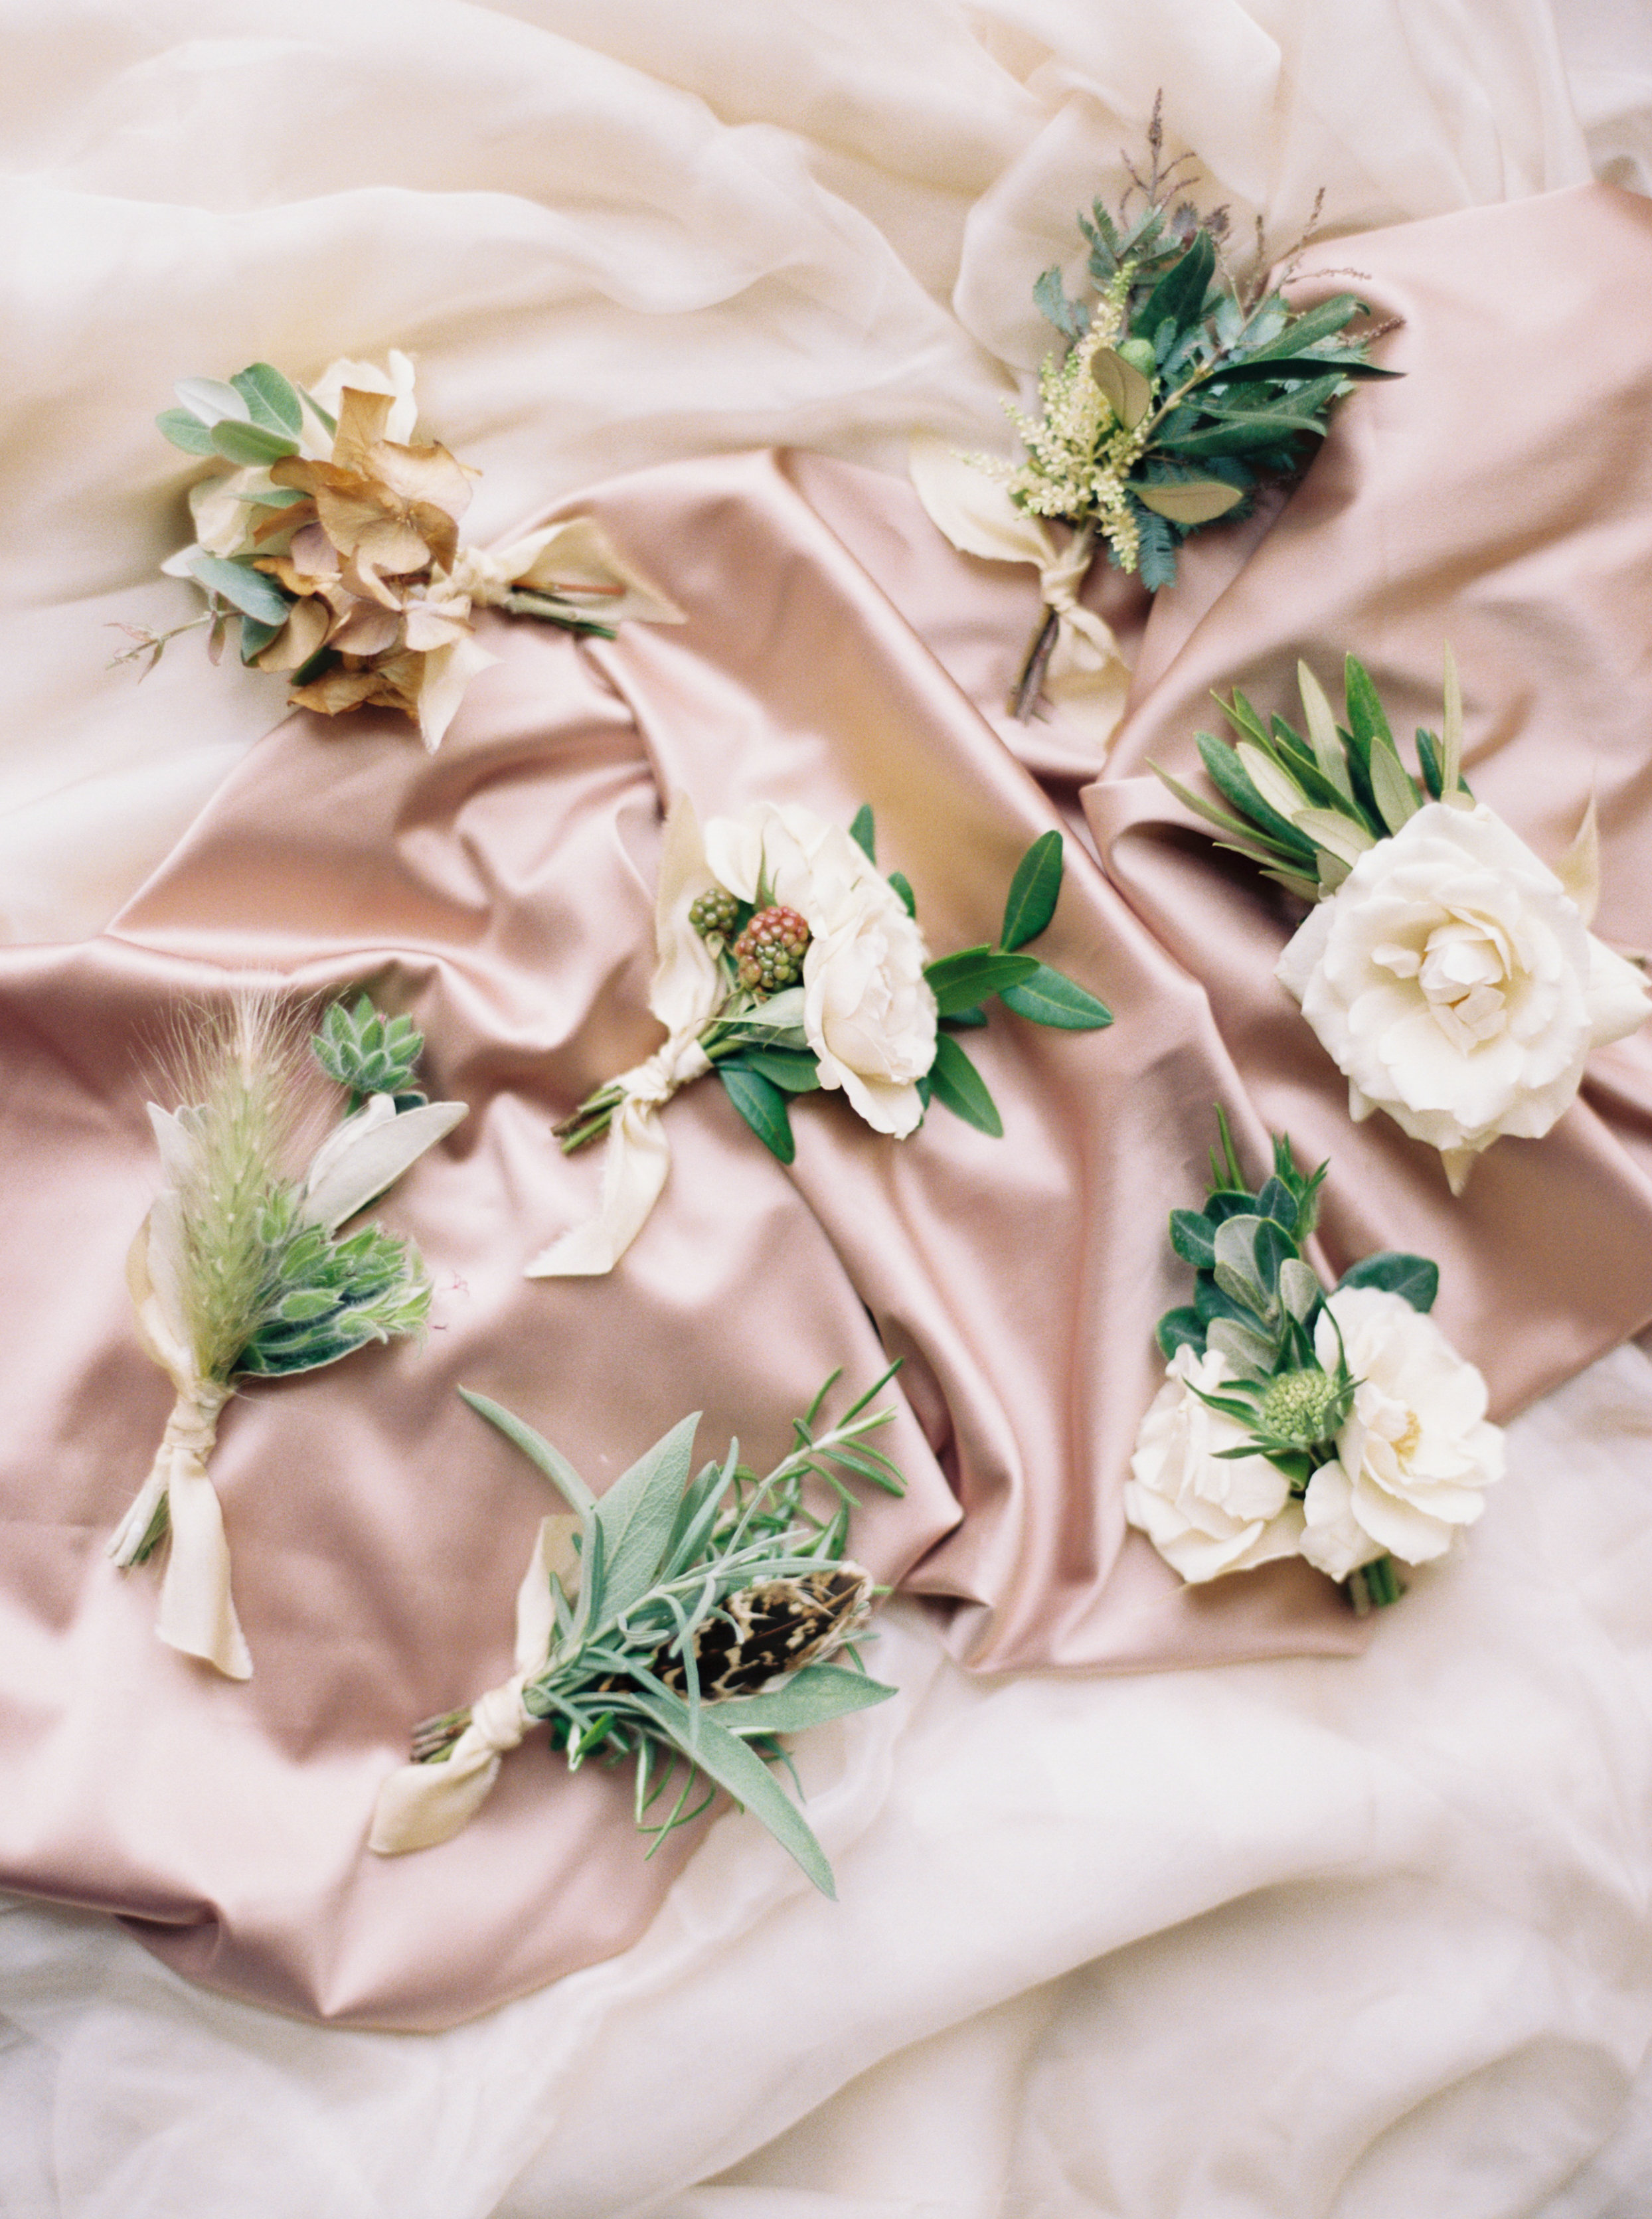 Luxury Wedding Planner UK | Lily & Sage | Old World Wedding European Style Wedding Blush Wedding Pink Wedding Buttonholes Boutonnières English Country House Wedding Green and White Wedding | Nicole Colwell Photography-0140.jpg